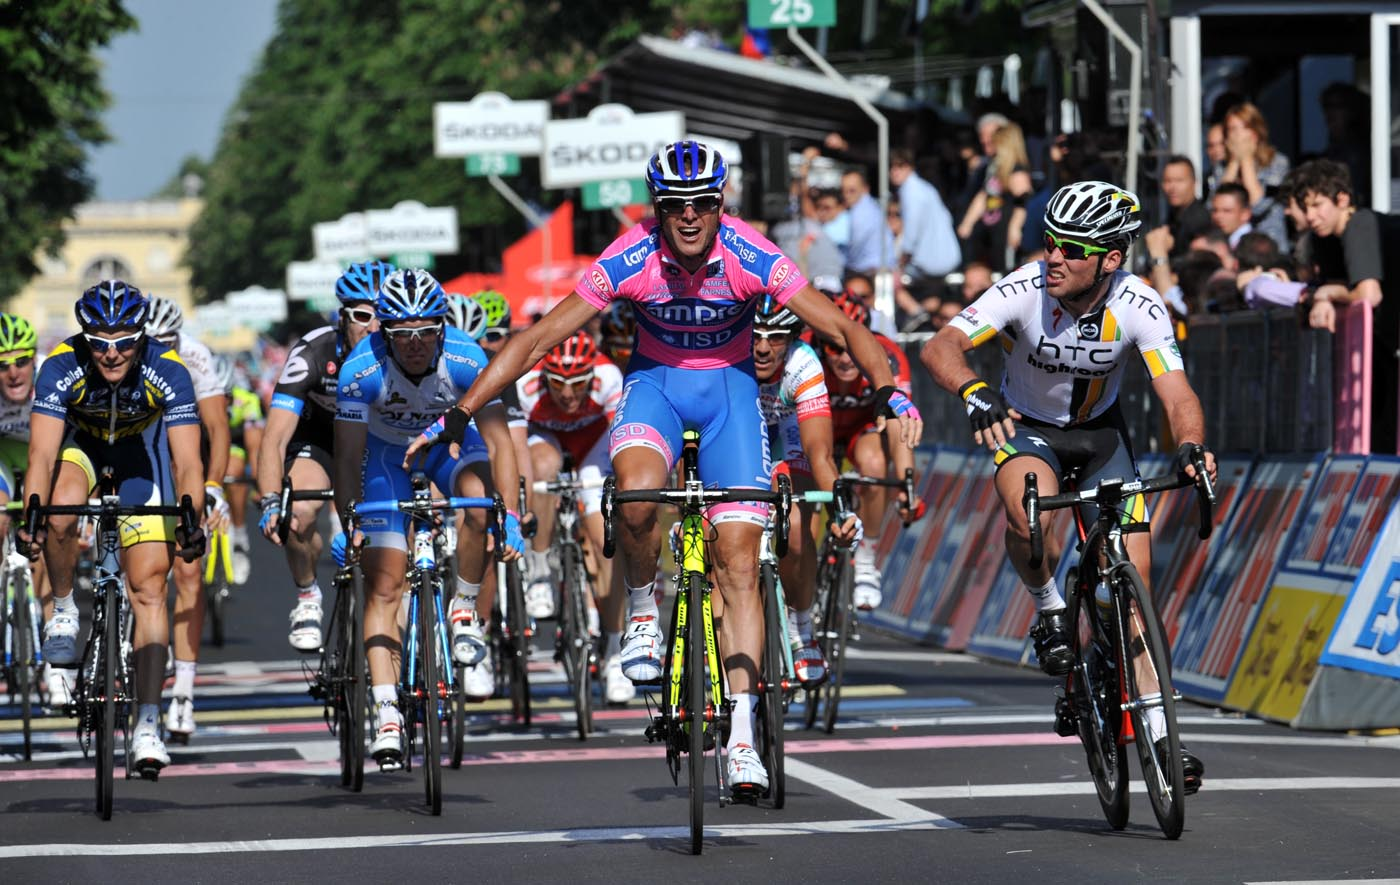 Alessandro Petacchi wins stage, Giro d